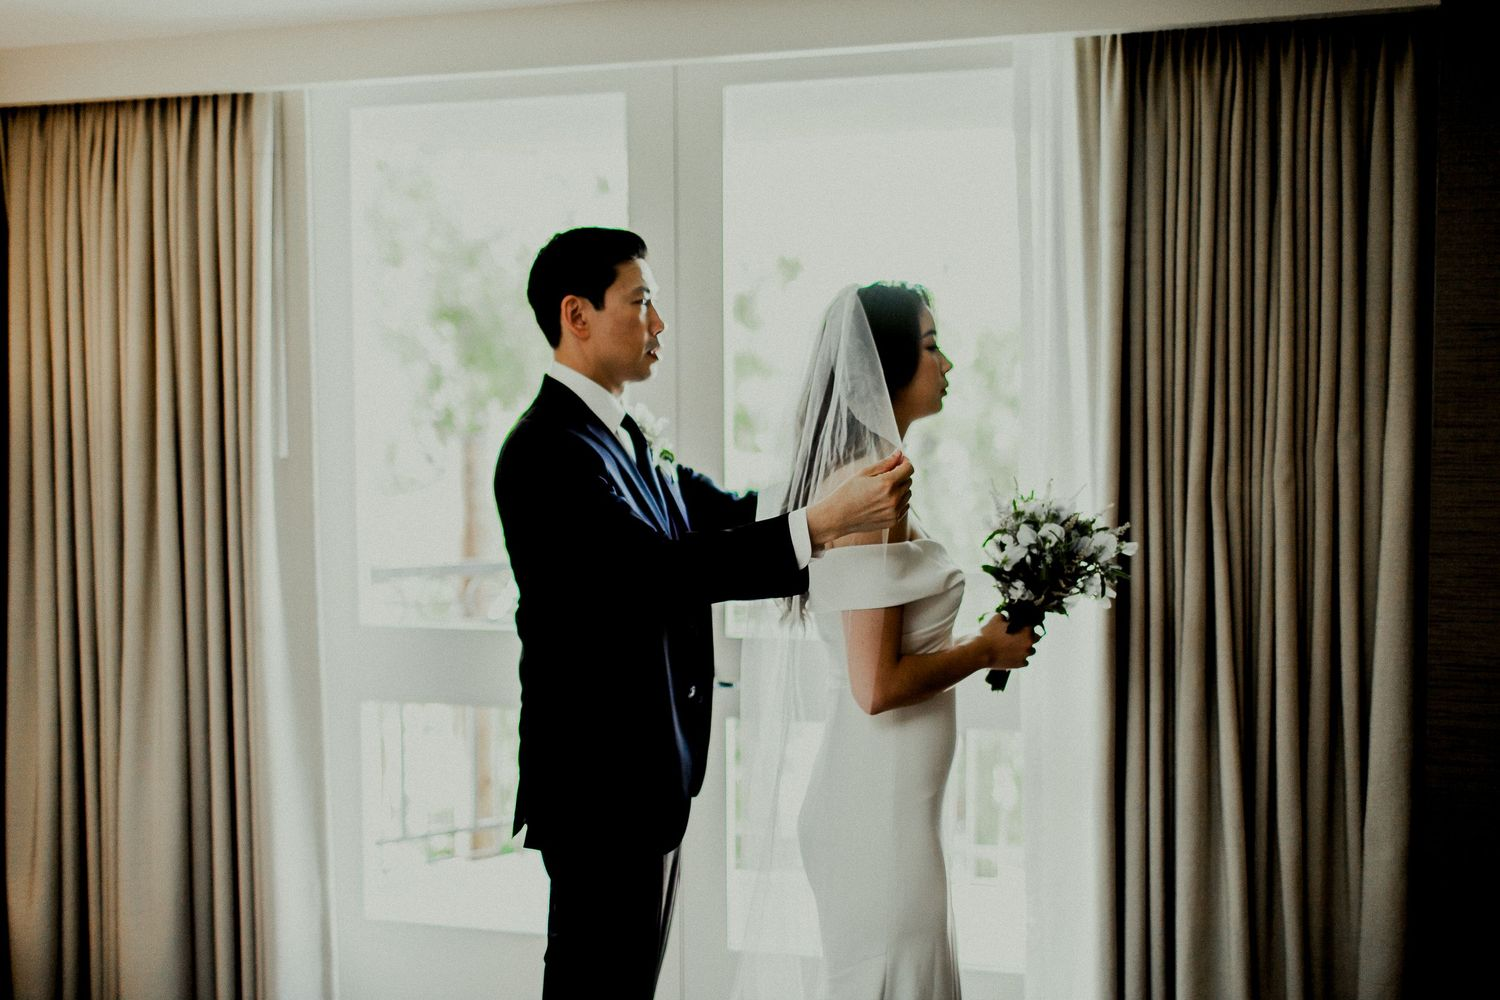 groom adjusting veil for bride in front of balcony window